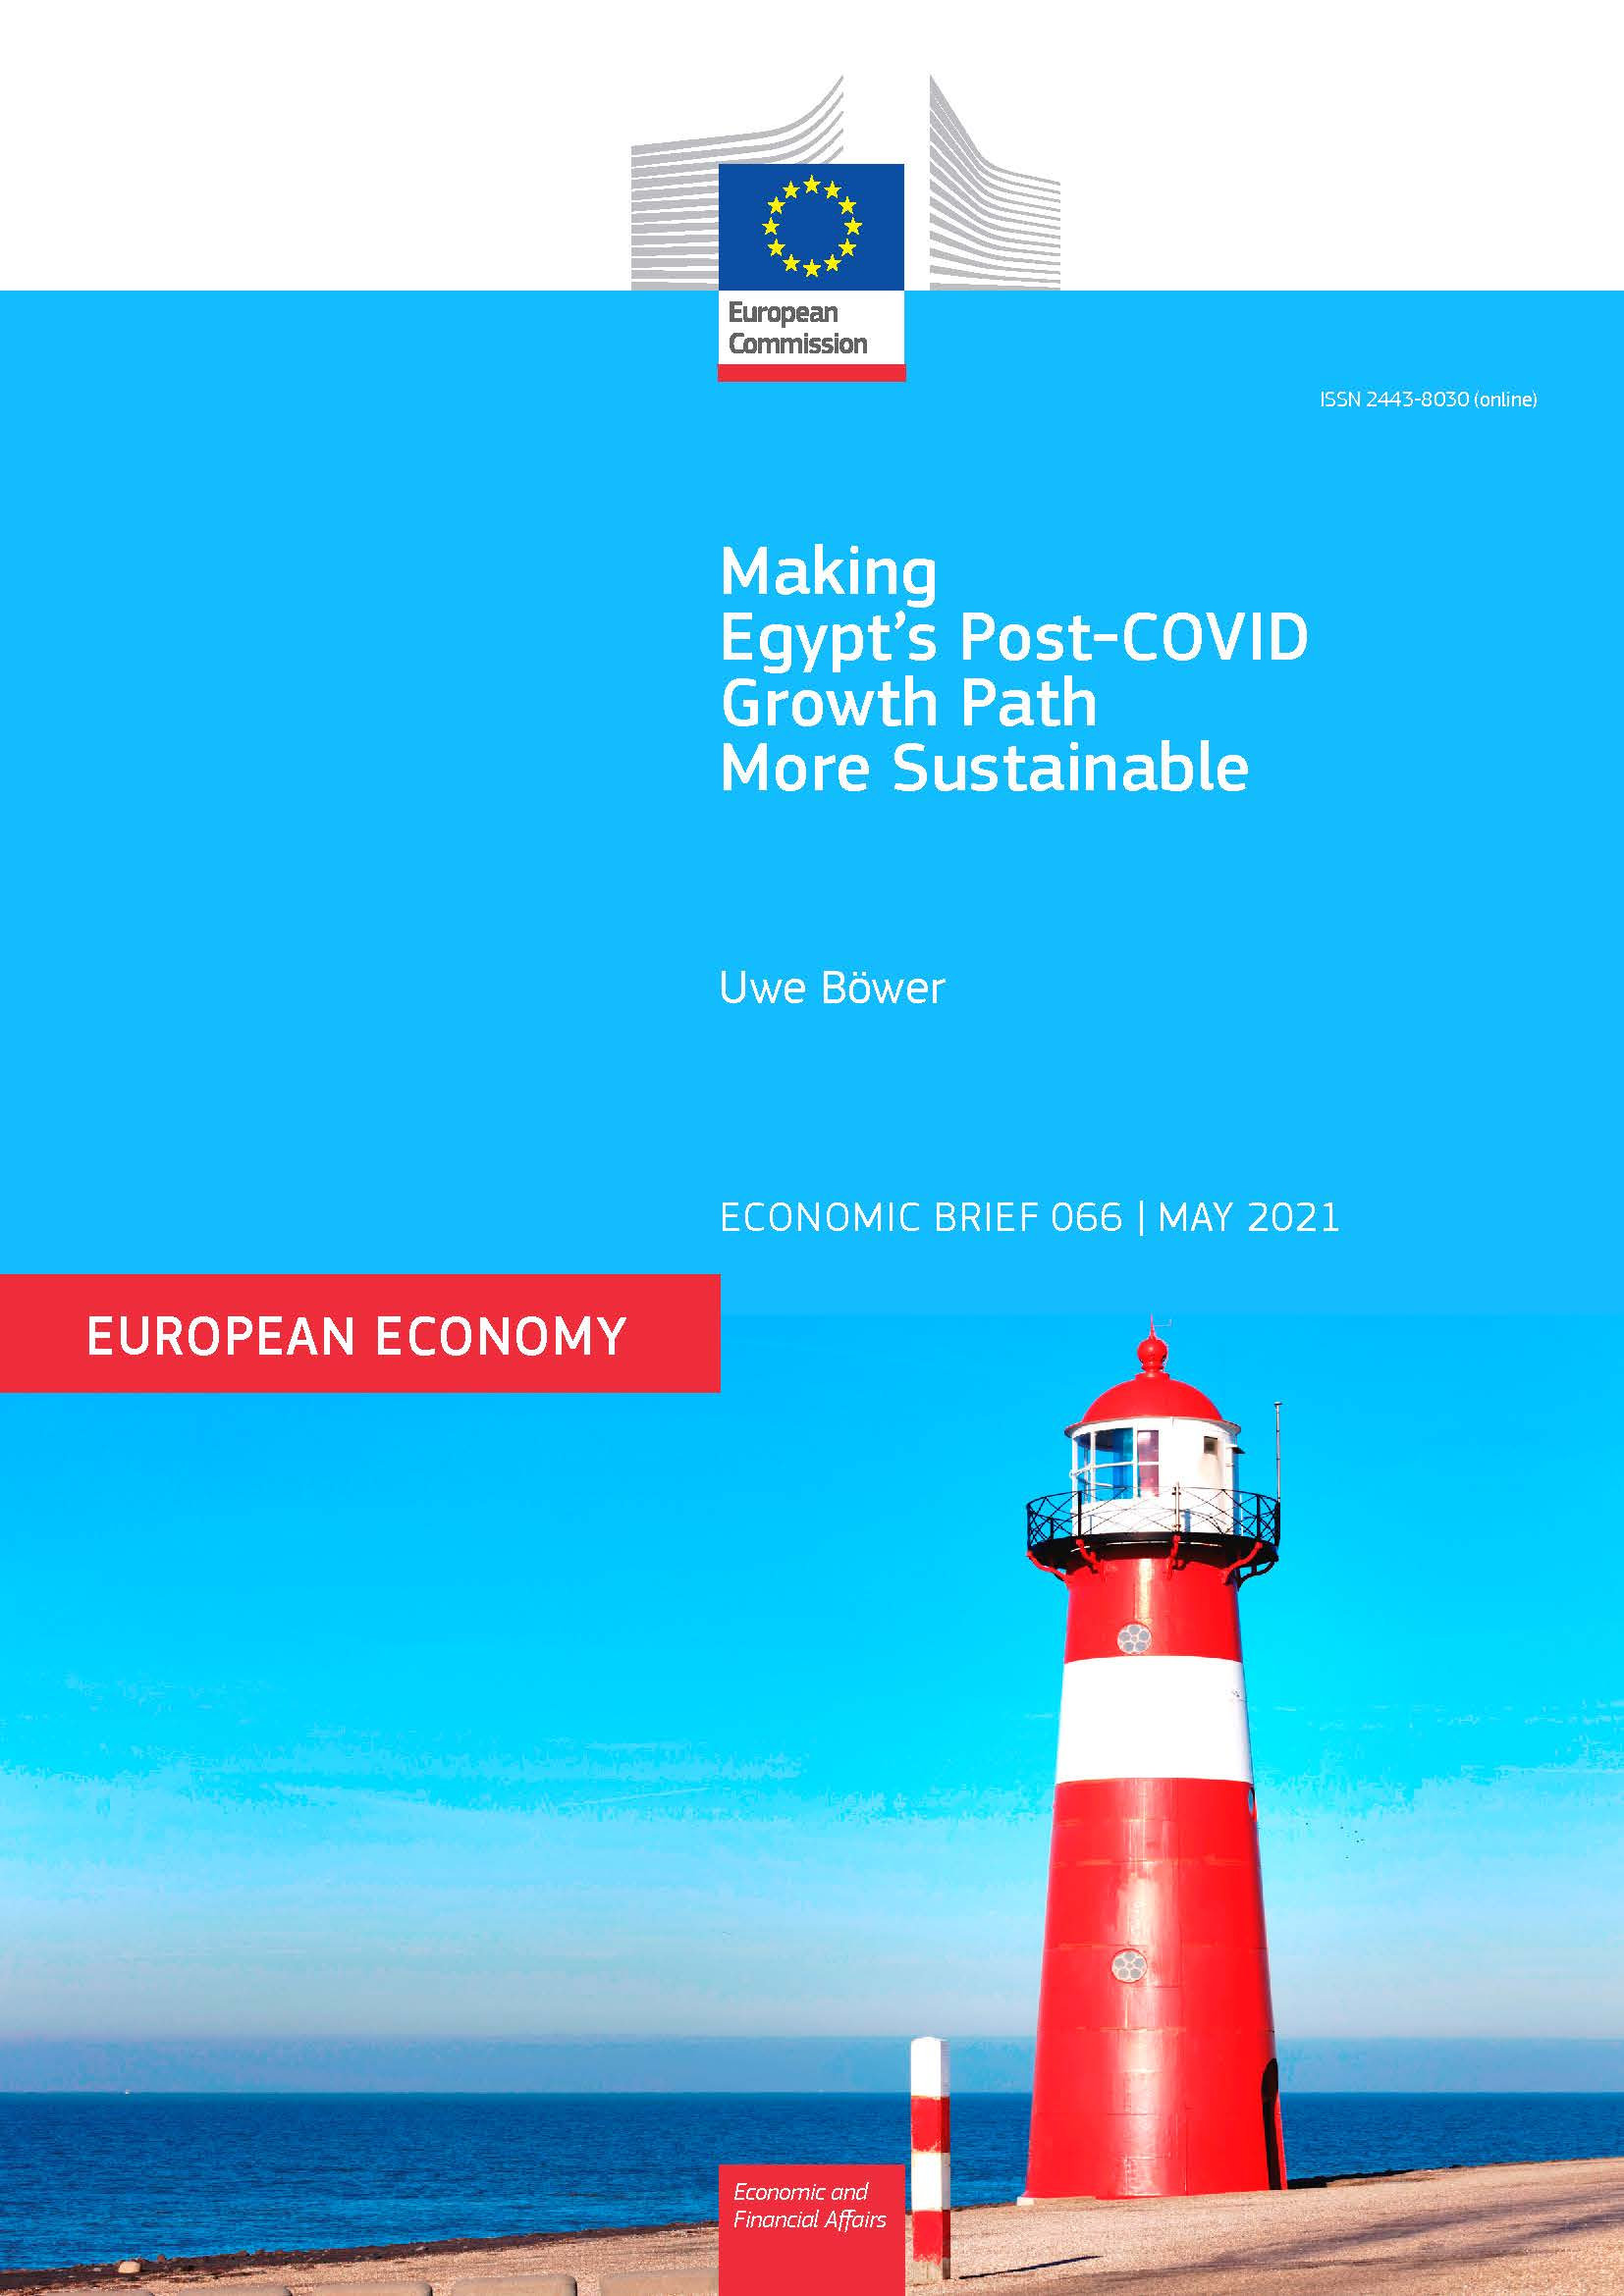 Making Egypt's Post-COVID Growth Path More Sustainable